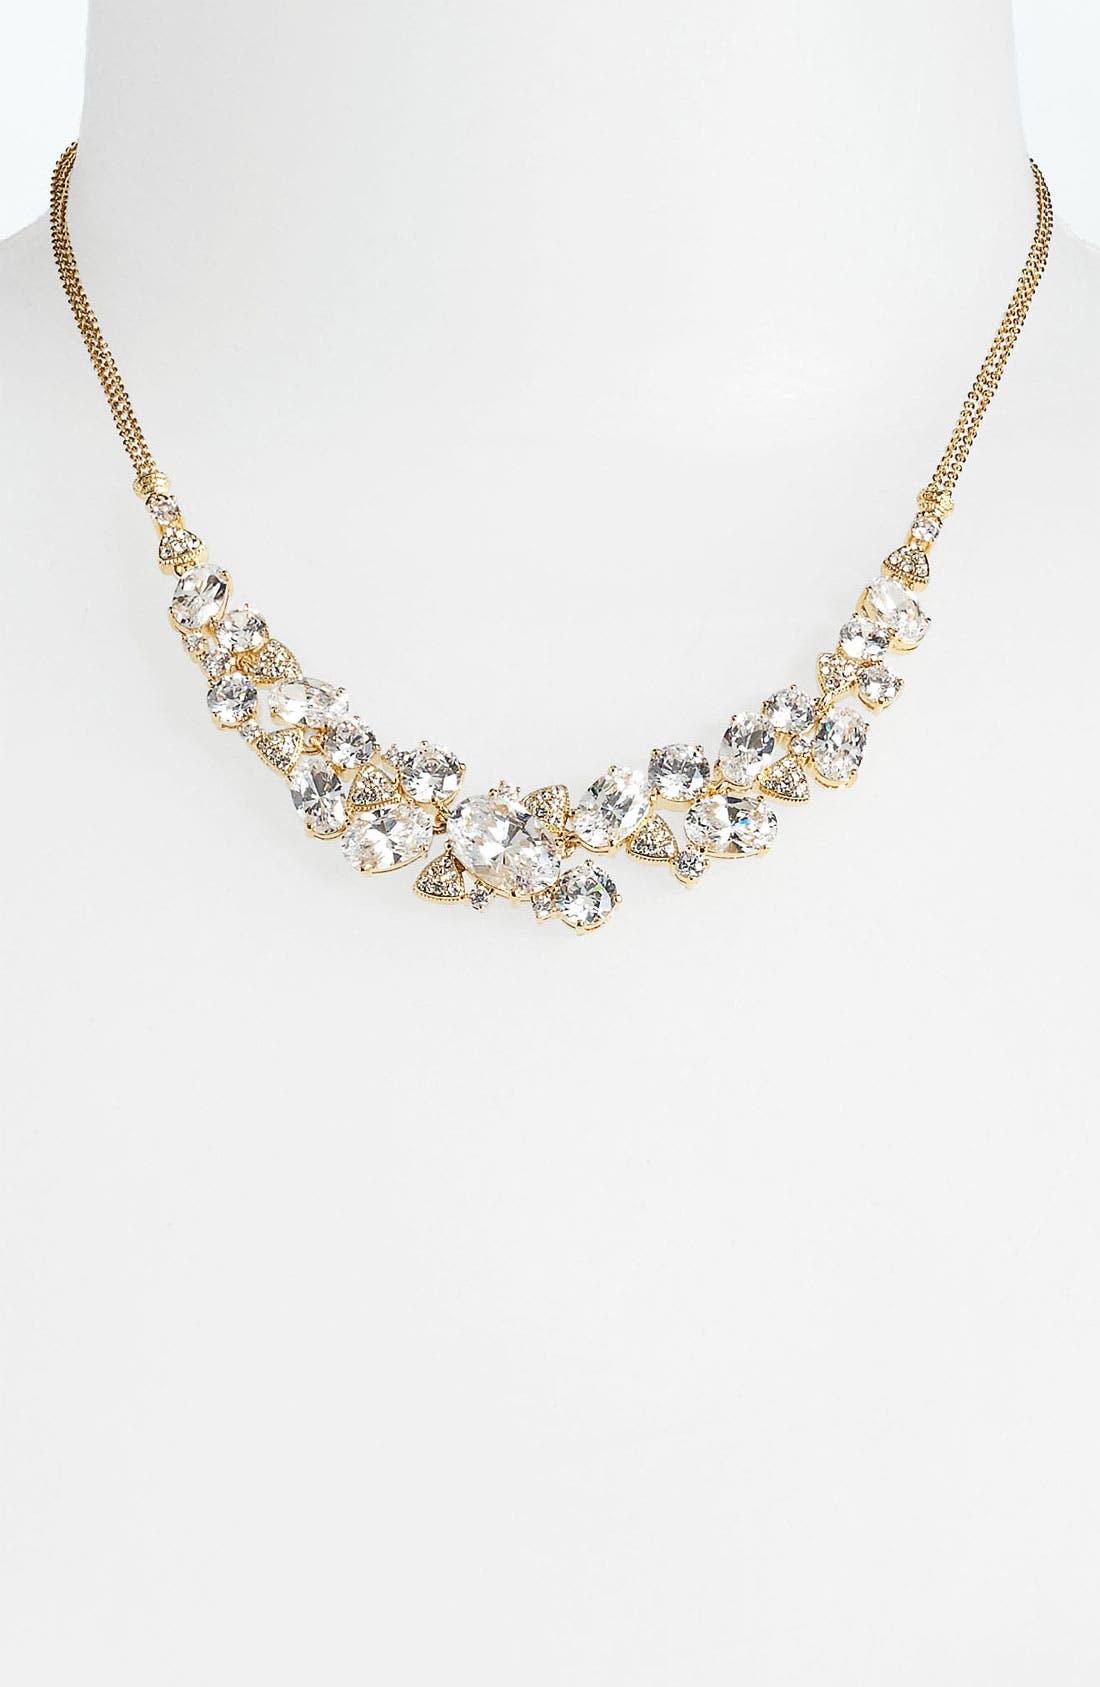 Main Image - Nadri Cubic Zirconia Cluster Frontal Necklace (Nordstrom Exclusive)